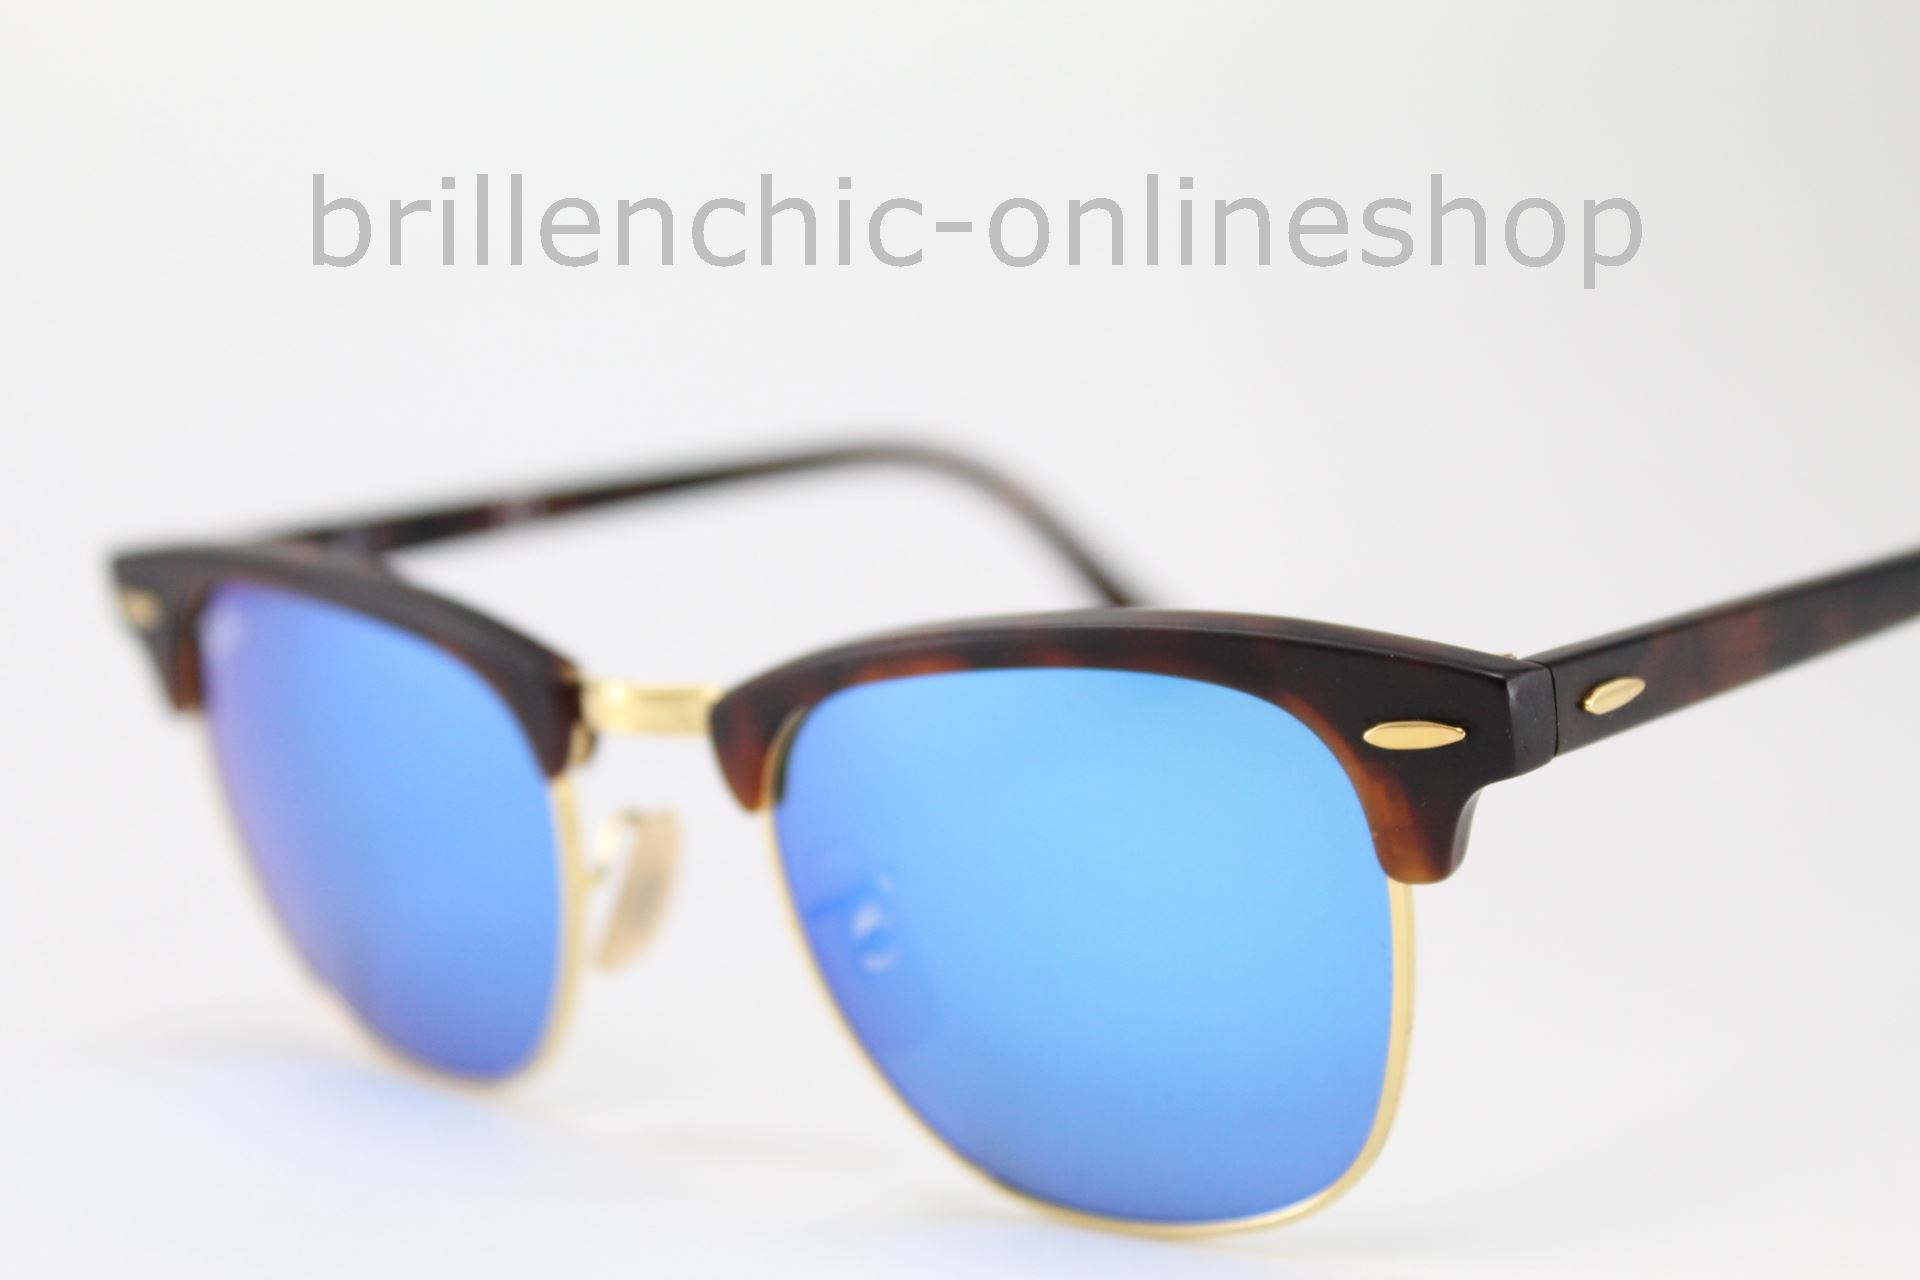 30e3b194fba Brillenchic-onlineshop in Berlin - Ray Ban CLUBMASTER RB 3016 1145 ...